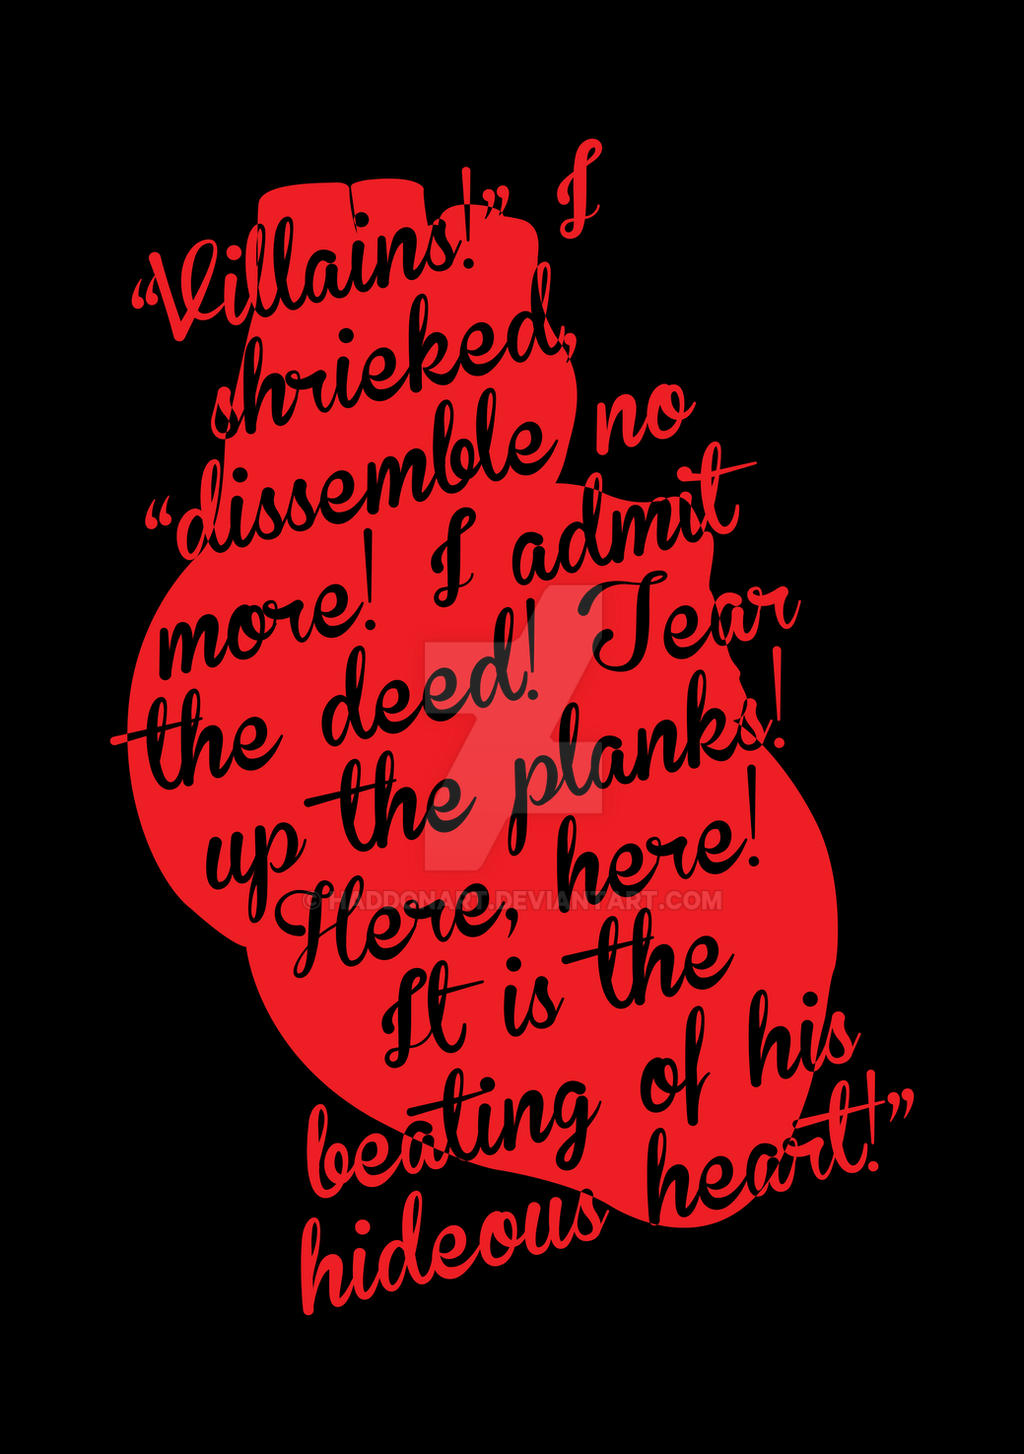 edgar allan poe the tell tale heart essays Edgar allan poe's the tell-tale heart disrupts our versions of reality, even as we identify with it in ways we might not want to admit something sparks our.